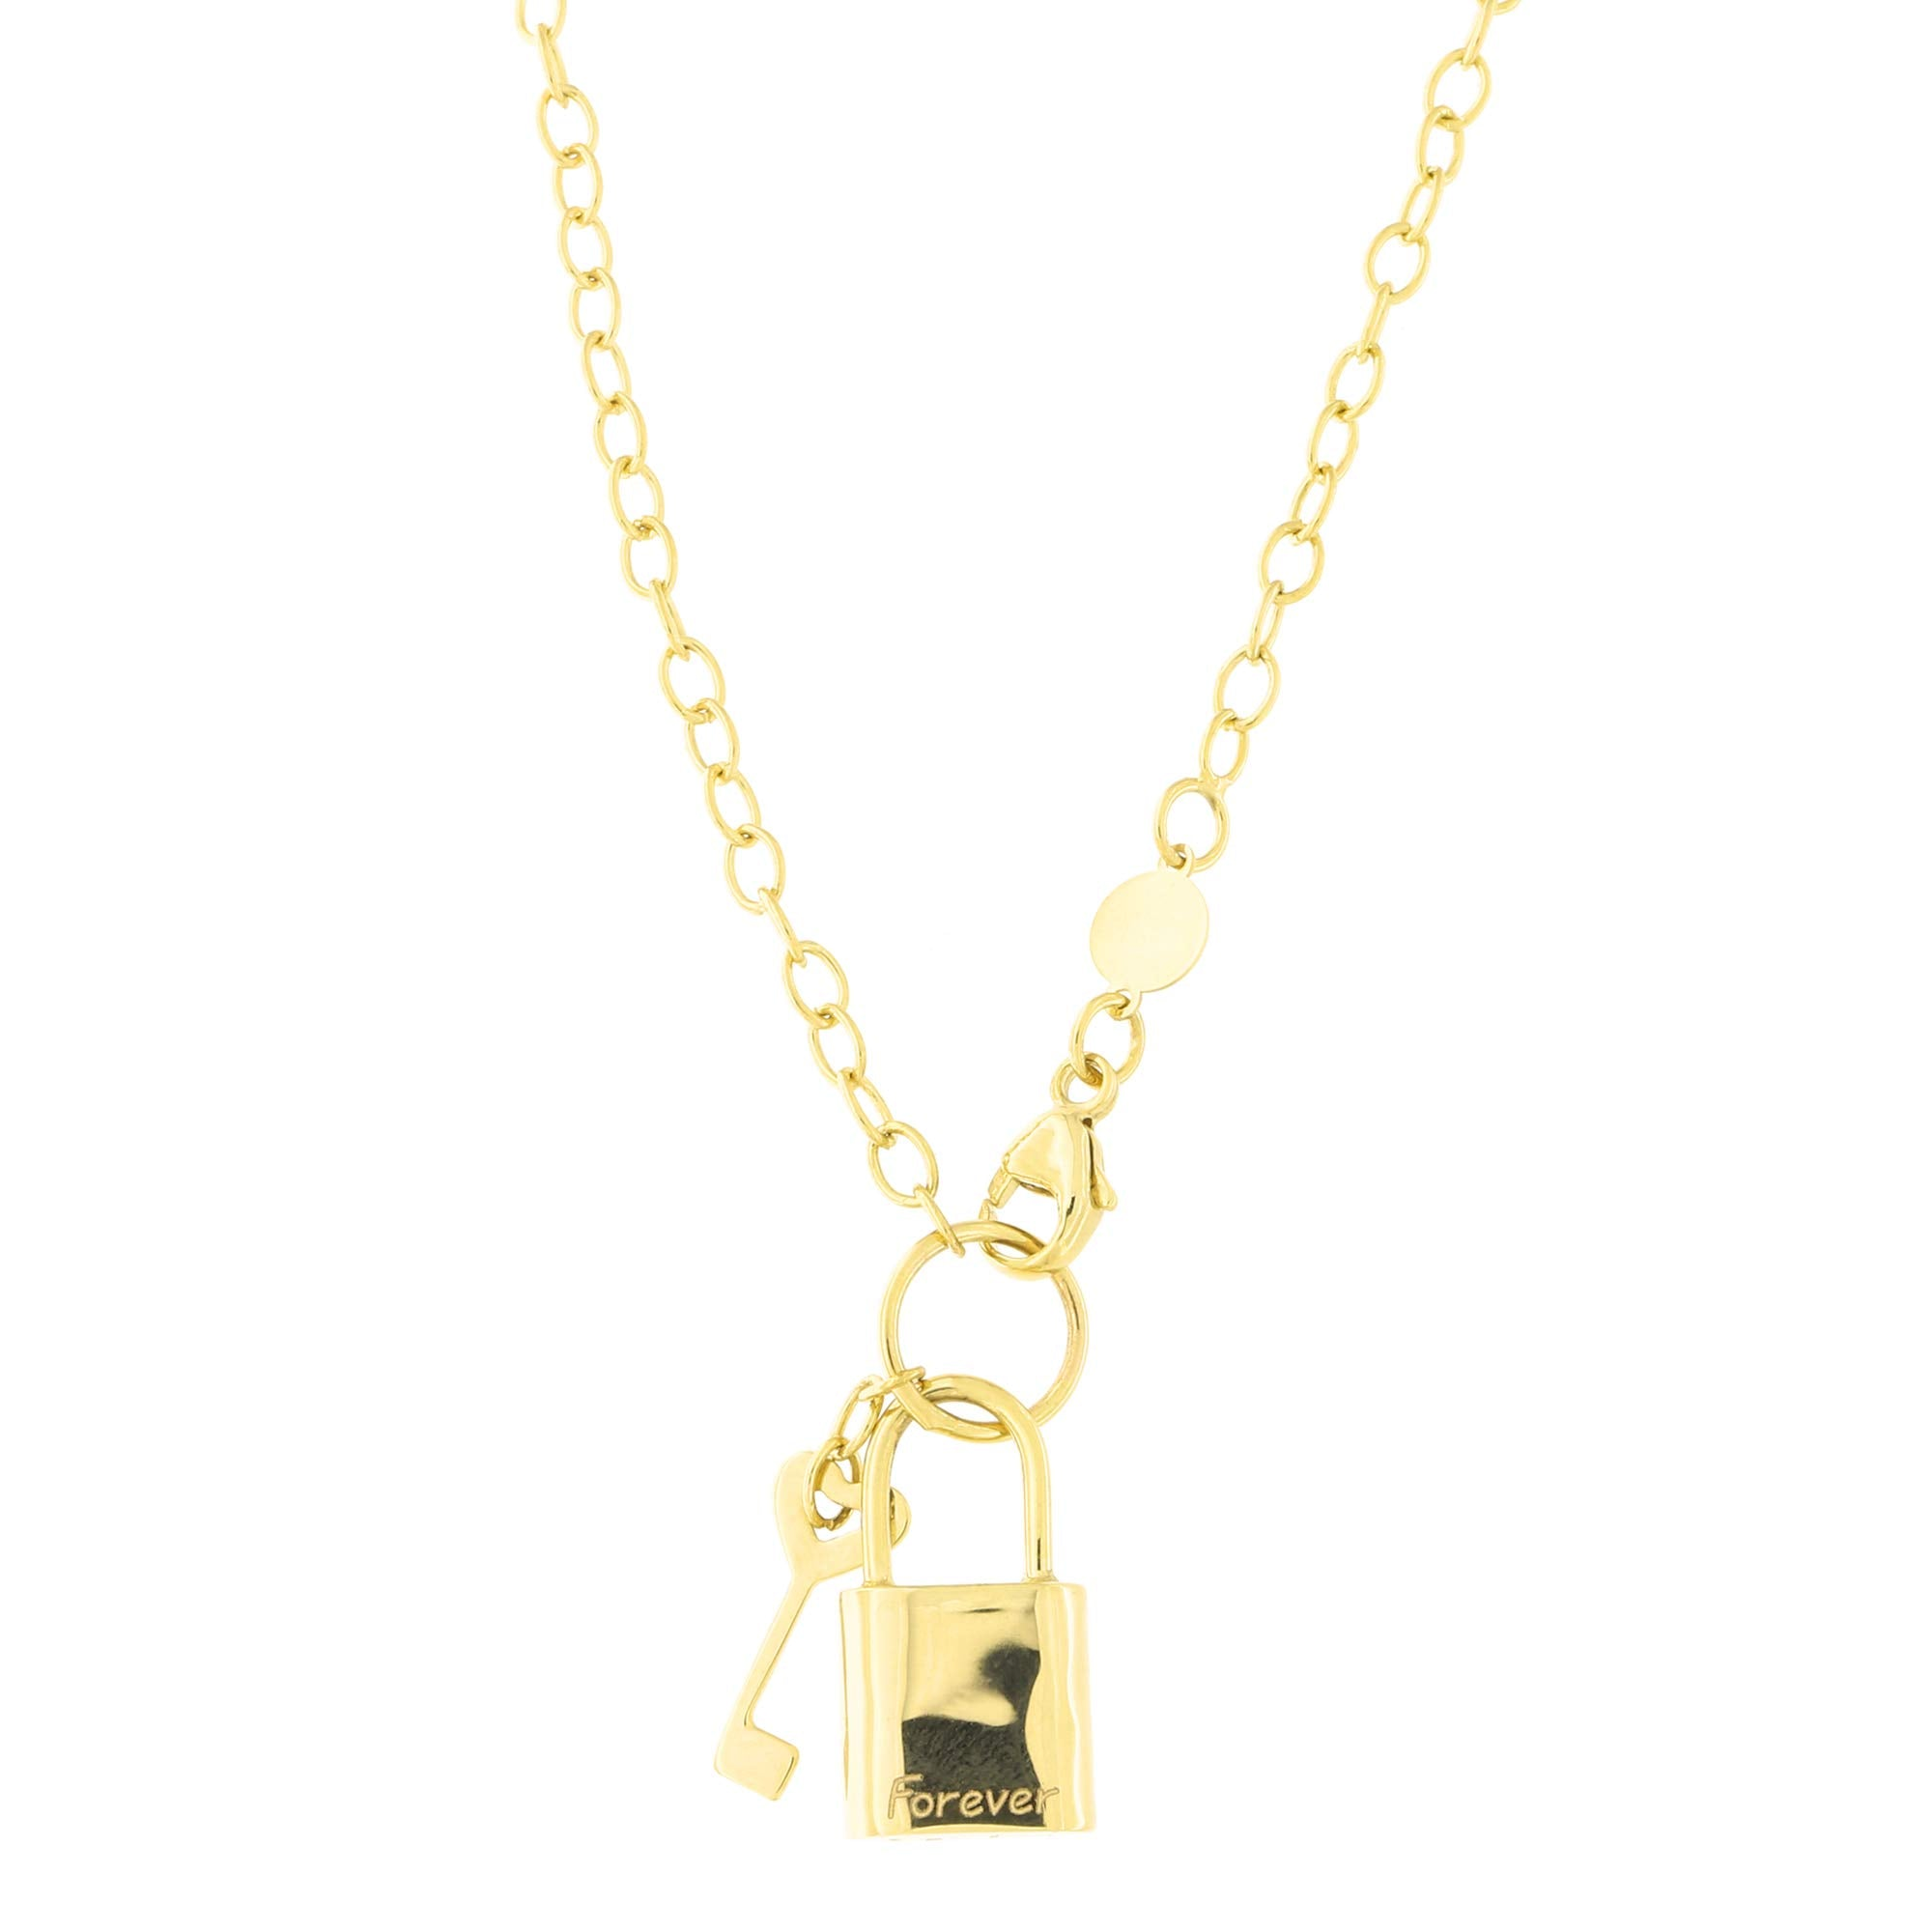 4c700c2acf 14k Yellow Gold Oval Link Chain Forever Lock and Heart Key Pendant Necklace  and Charm Bracelet Set